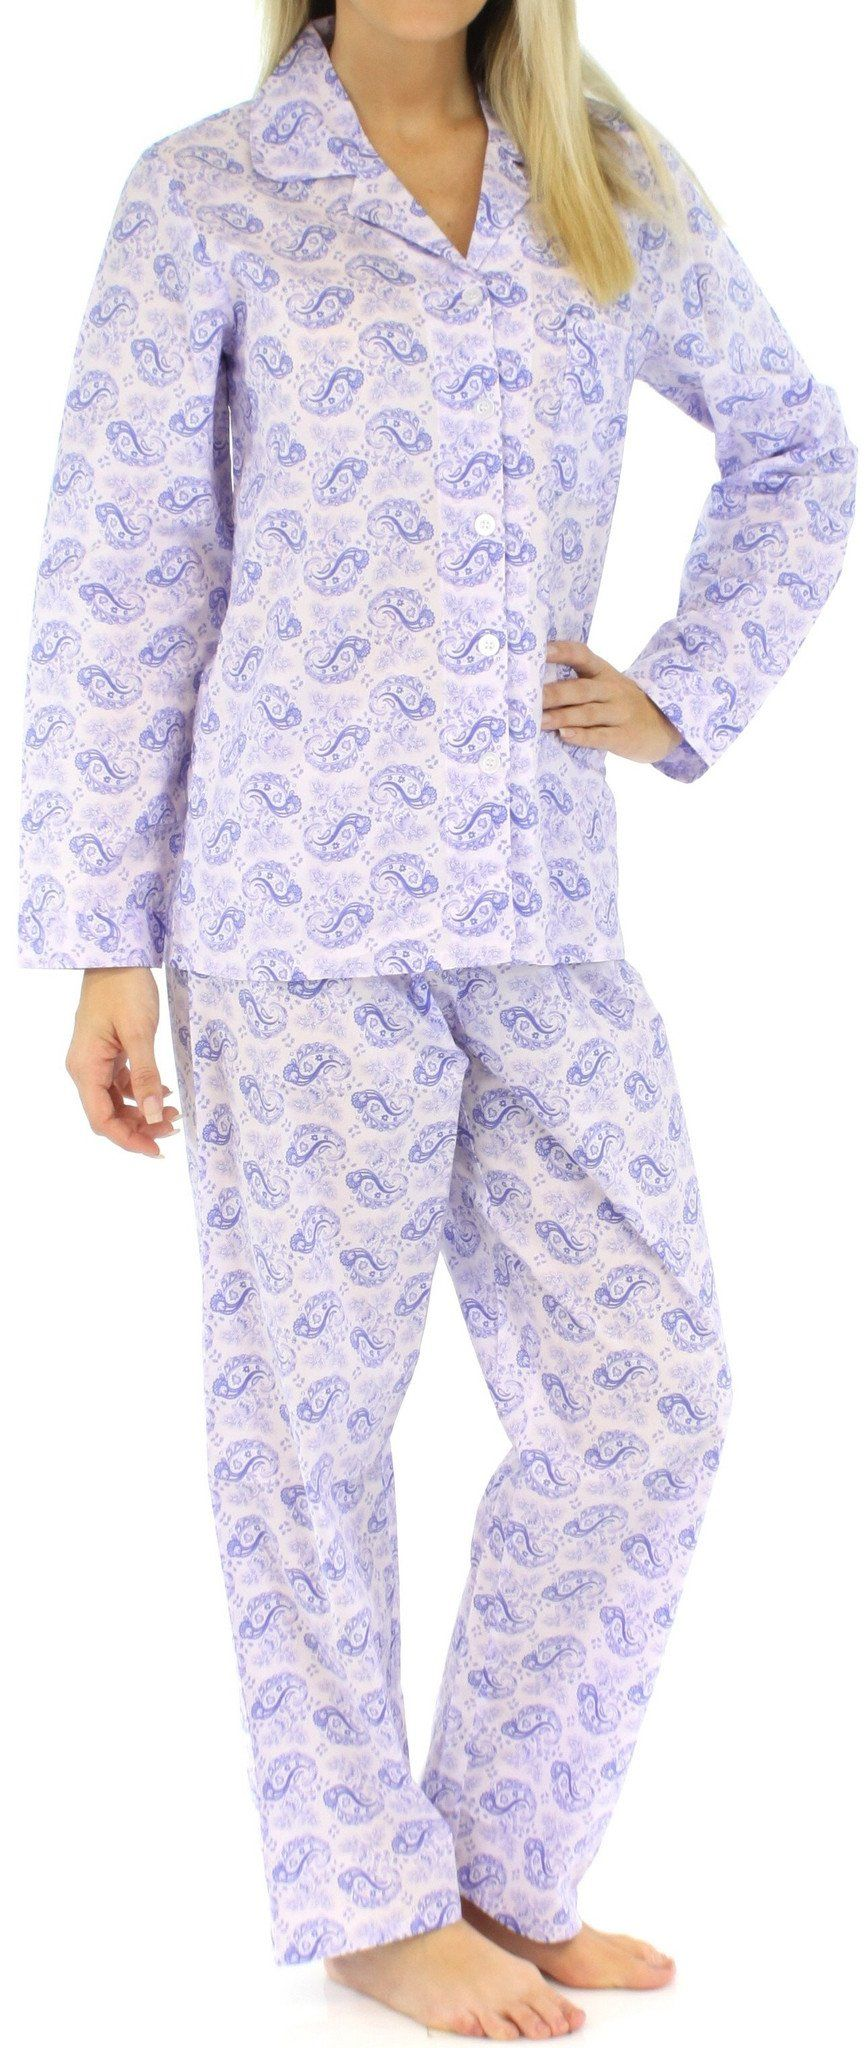 e57fb8791c Sleepyheads Women s Lightweight Cotton Pajamas. Our Sleepyheads poplin cotton  long sleeve ...